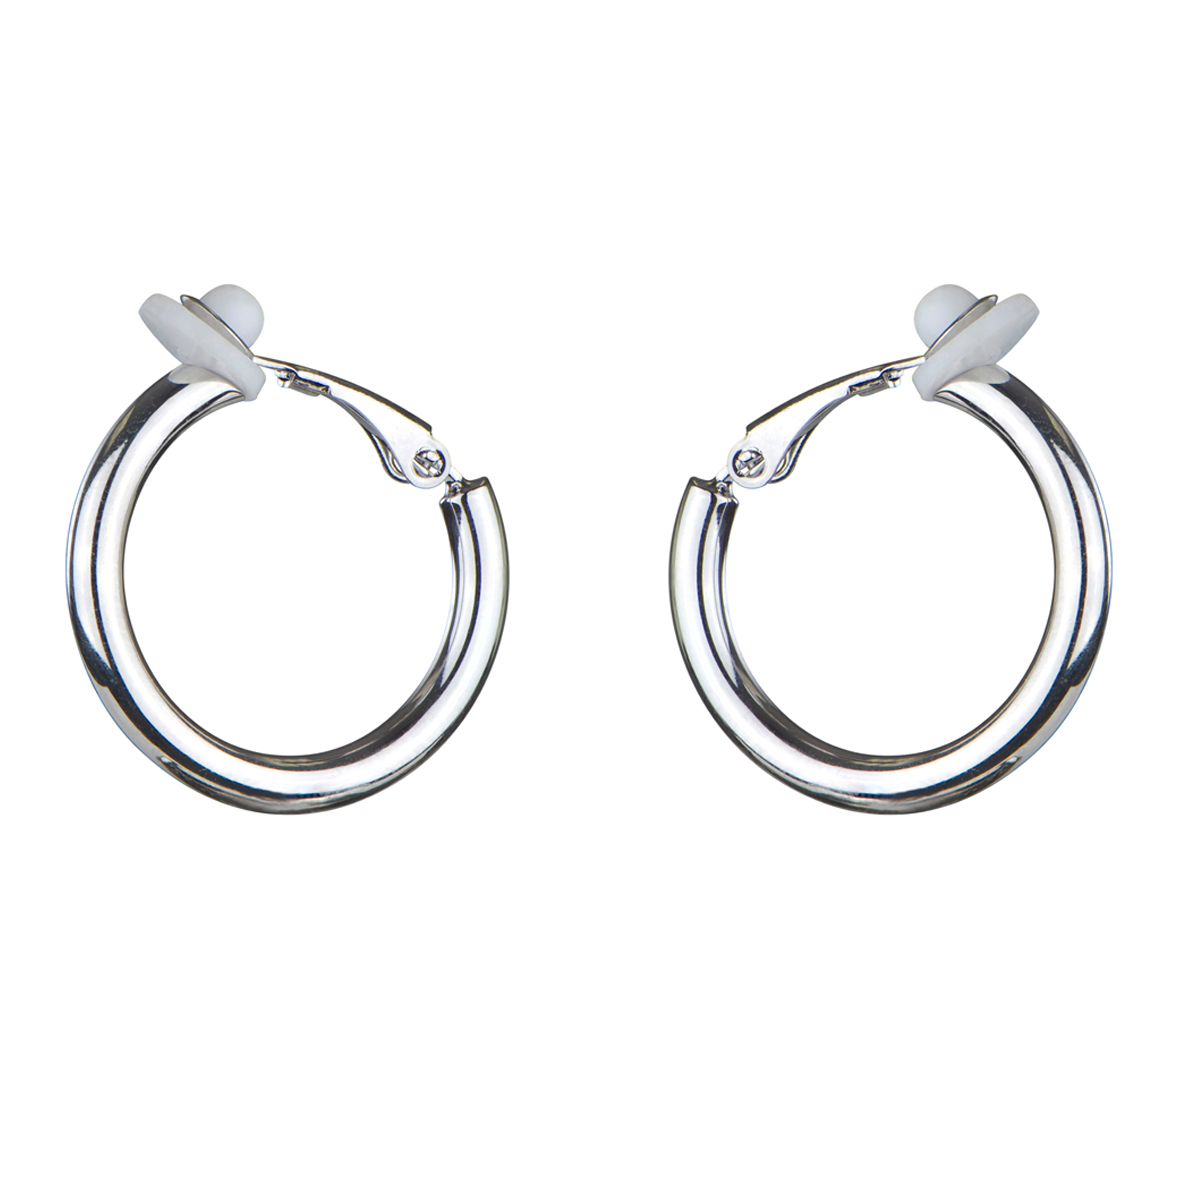 clip earrings charlineu0027s clip-on silvertone hoop earrings - 18mm yeicdwu